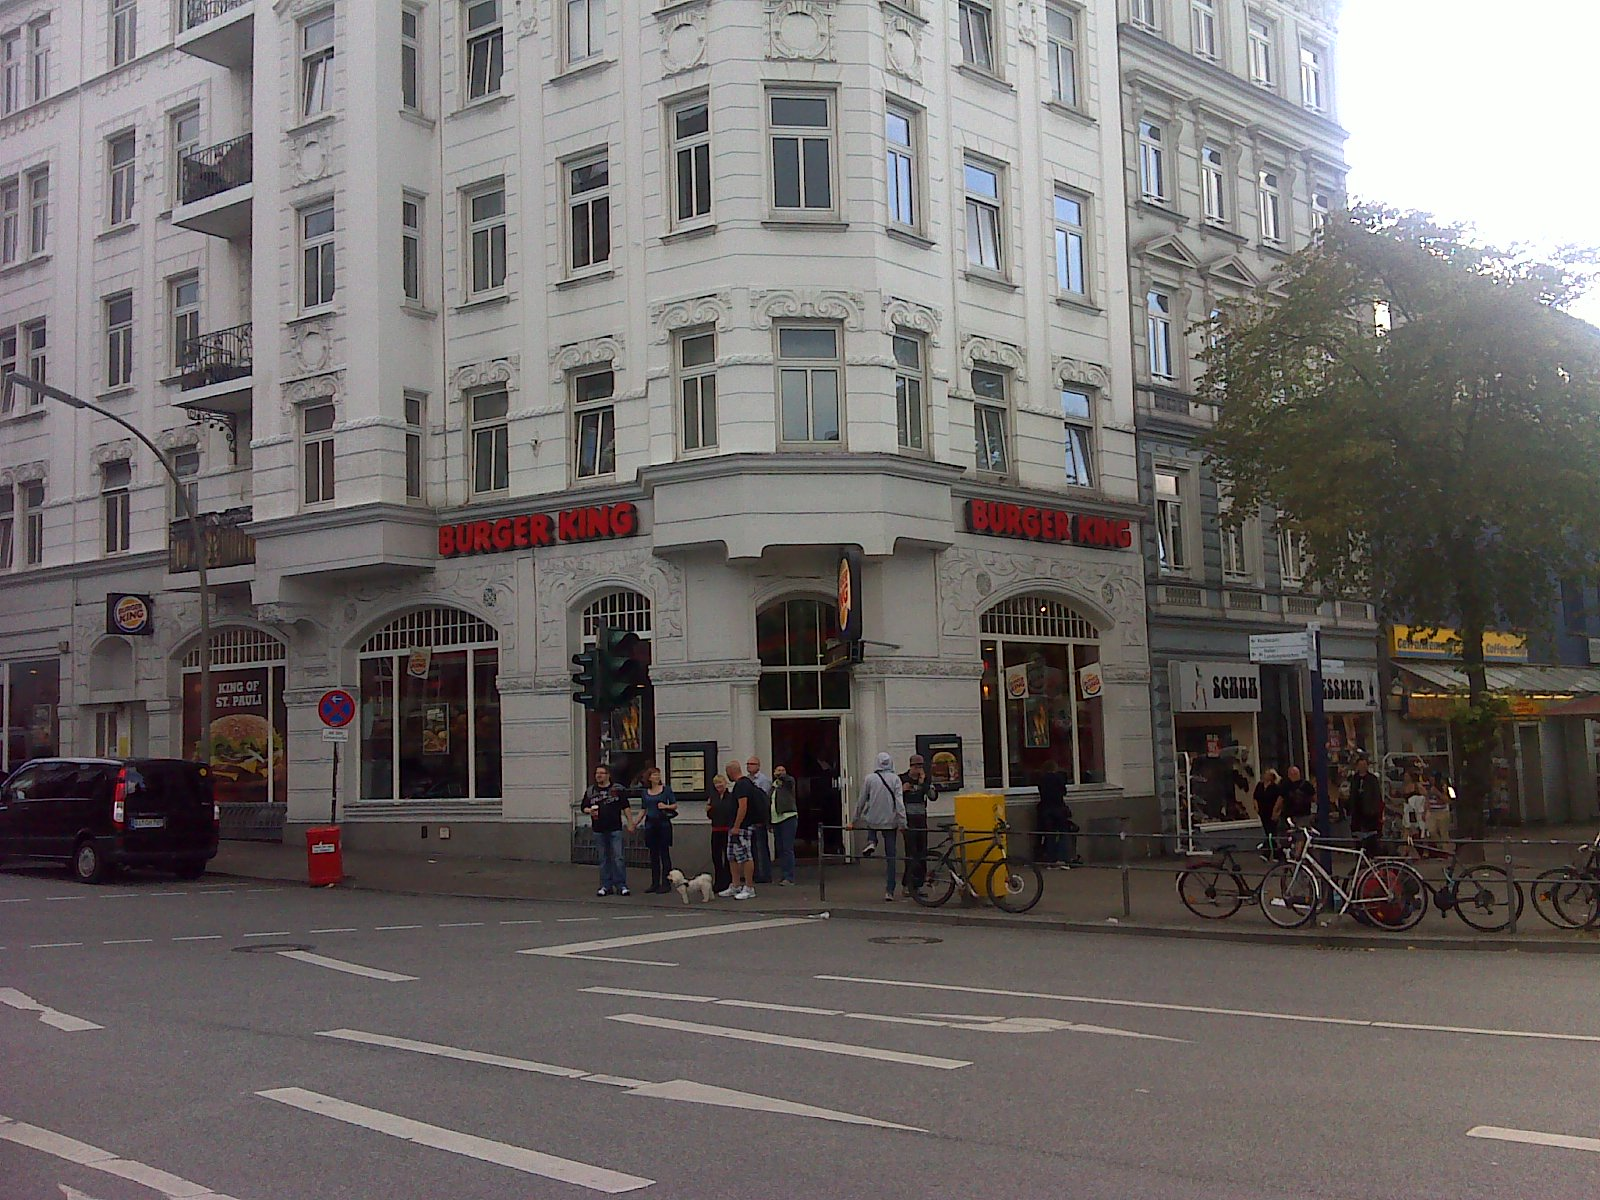 burger king reeperbahn st pauli hamburg germany image. Black Bedroom Furniture Sets. Home Design Ideas